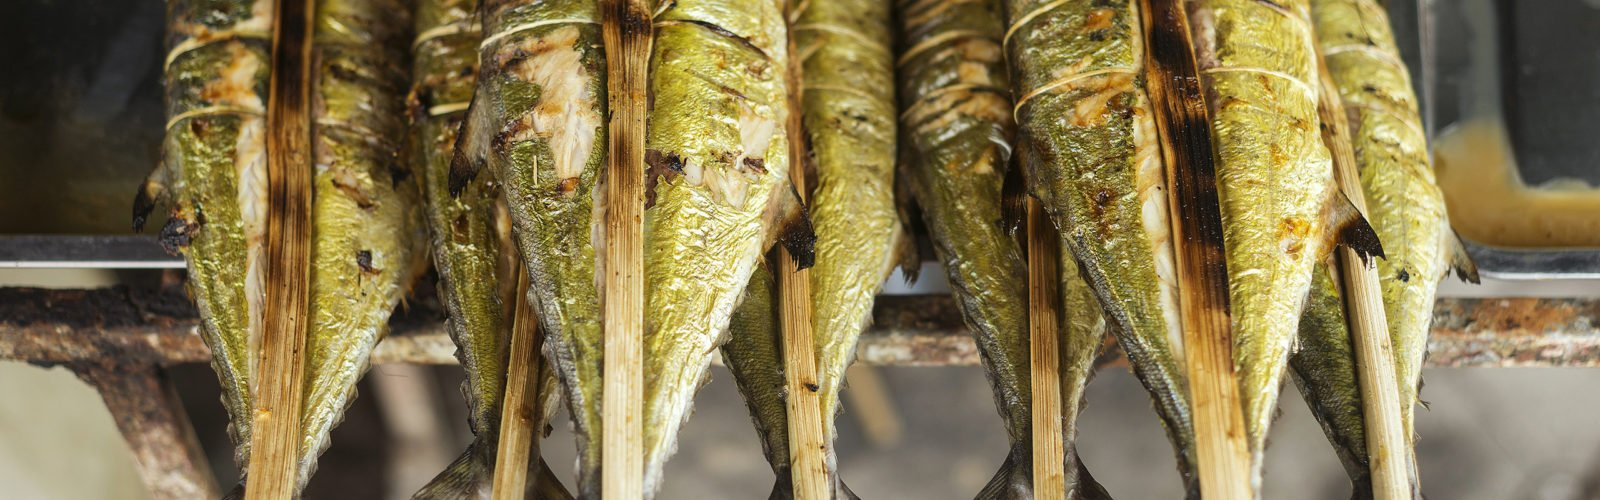 kep-cambodia-grilled-fish